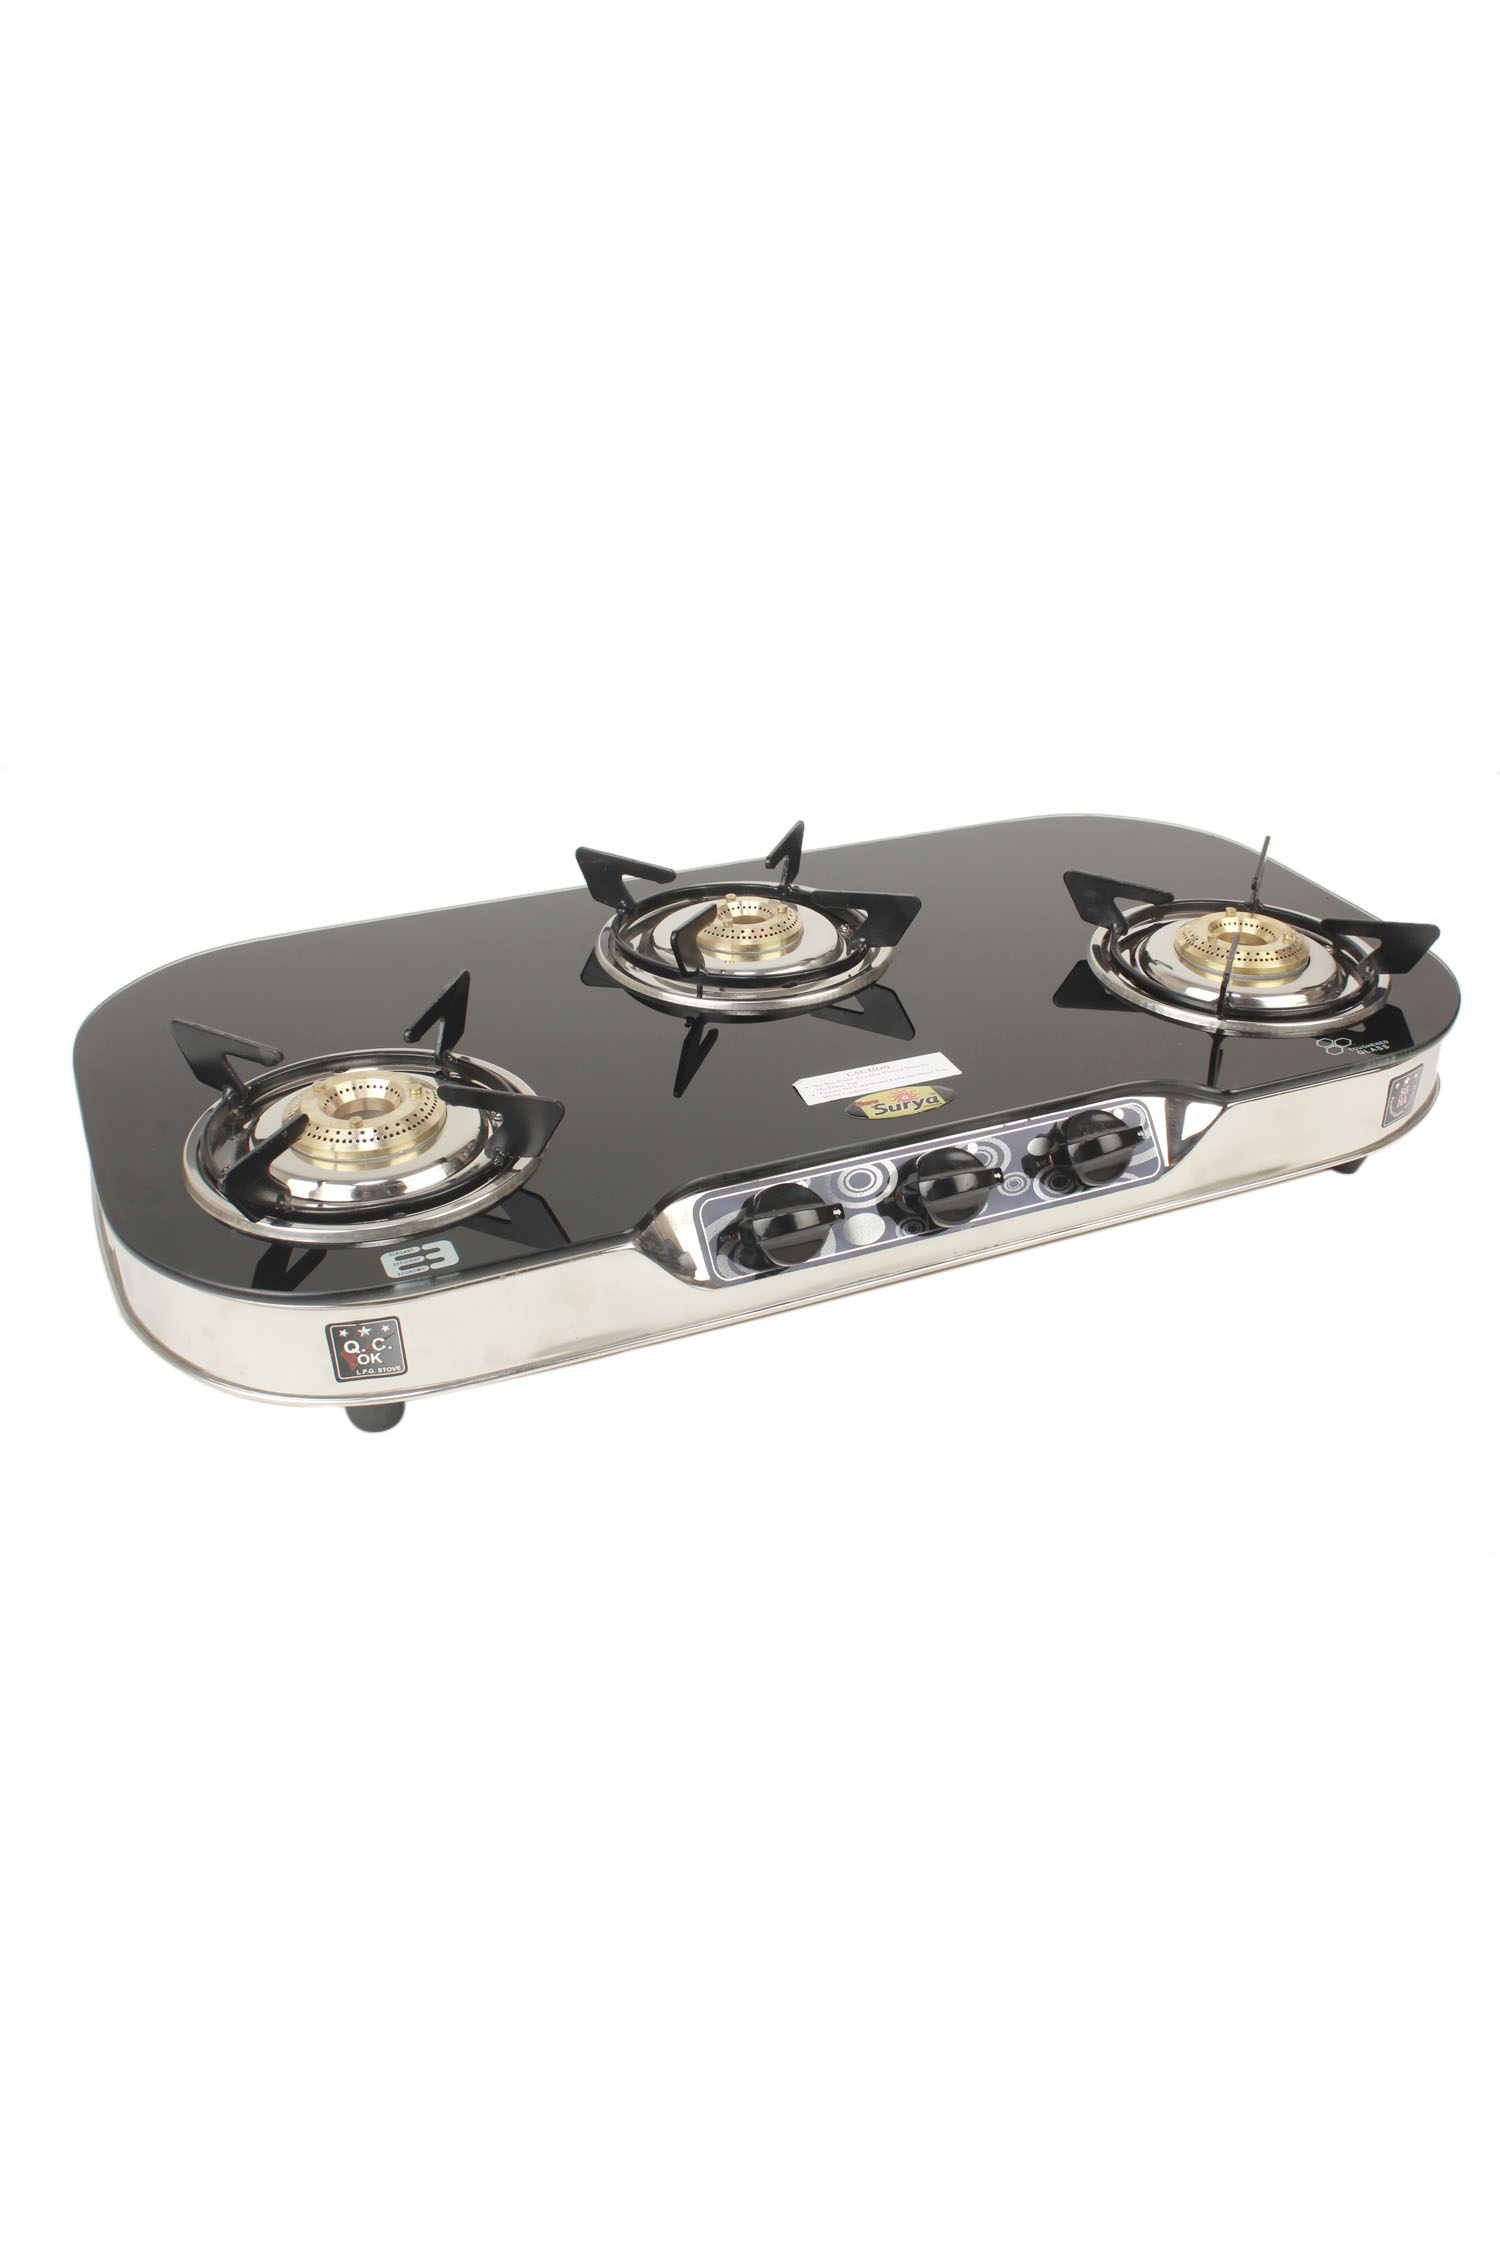 Gas Stove 3 Burner at shopclues